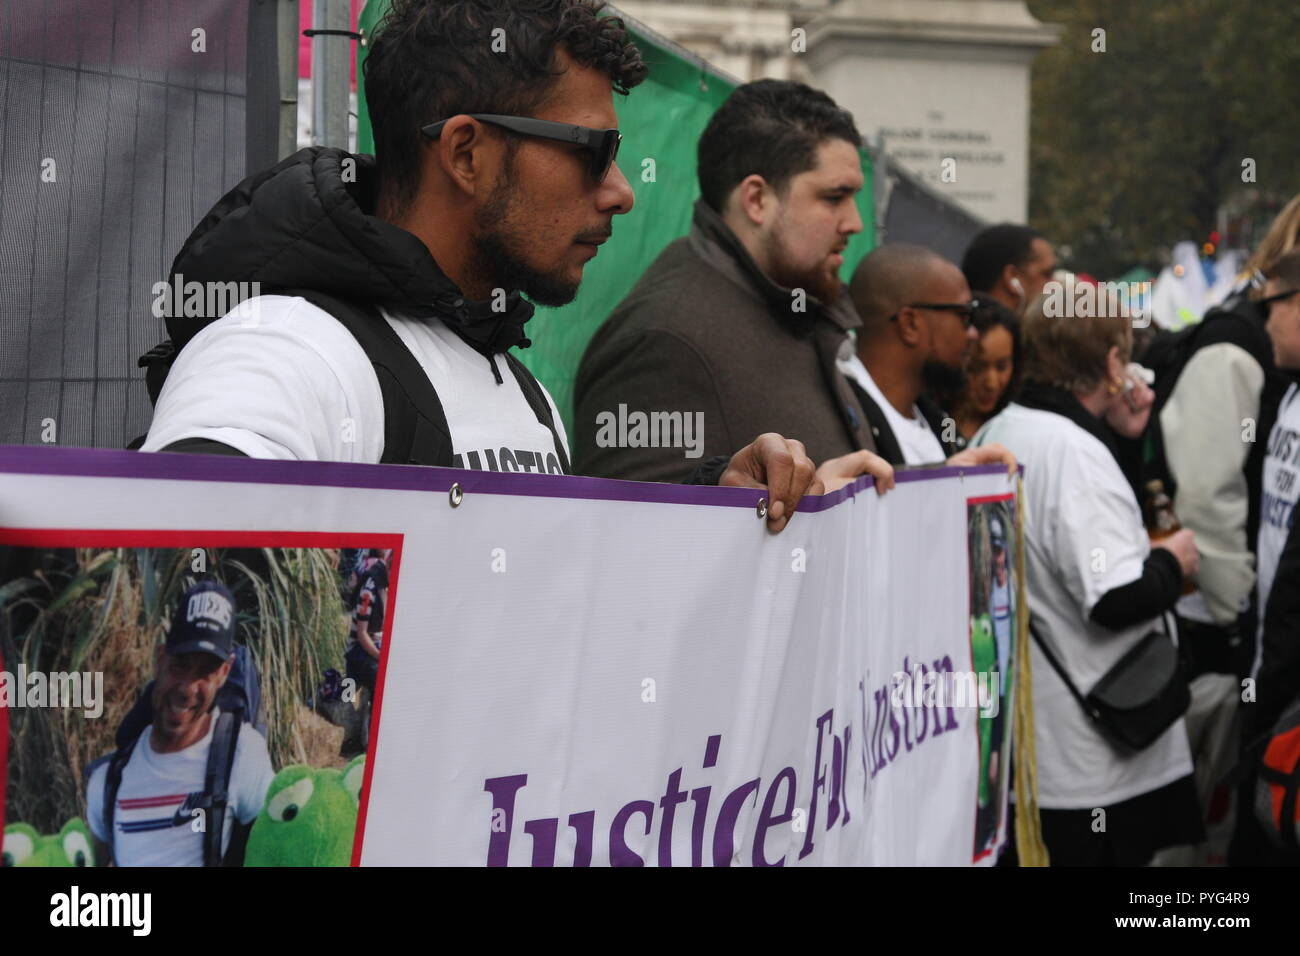 London, UK, 27th October, 2018. Friends, family and supporters campaigning for justice for people who died in custody, or while being arrested  take part In the 20th annual march organised by the United Families and Friends Campaign. Protesters hold a banner calling for justice for Winston Augustine, who died in Wormwood Scrubs prison earlier this year. The march  goes from Trafalger Square to Downing Street, where a petition is handed in. Roland Ravenhill/Alamy Live News. - Stock Image